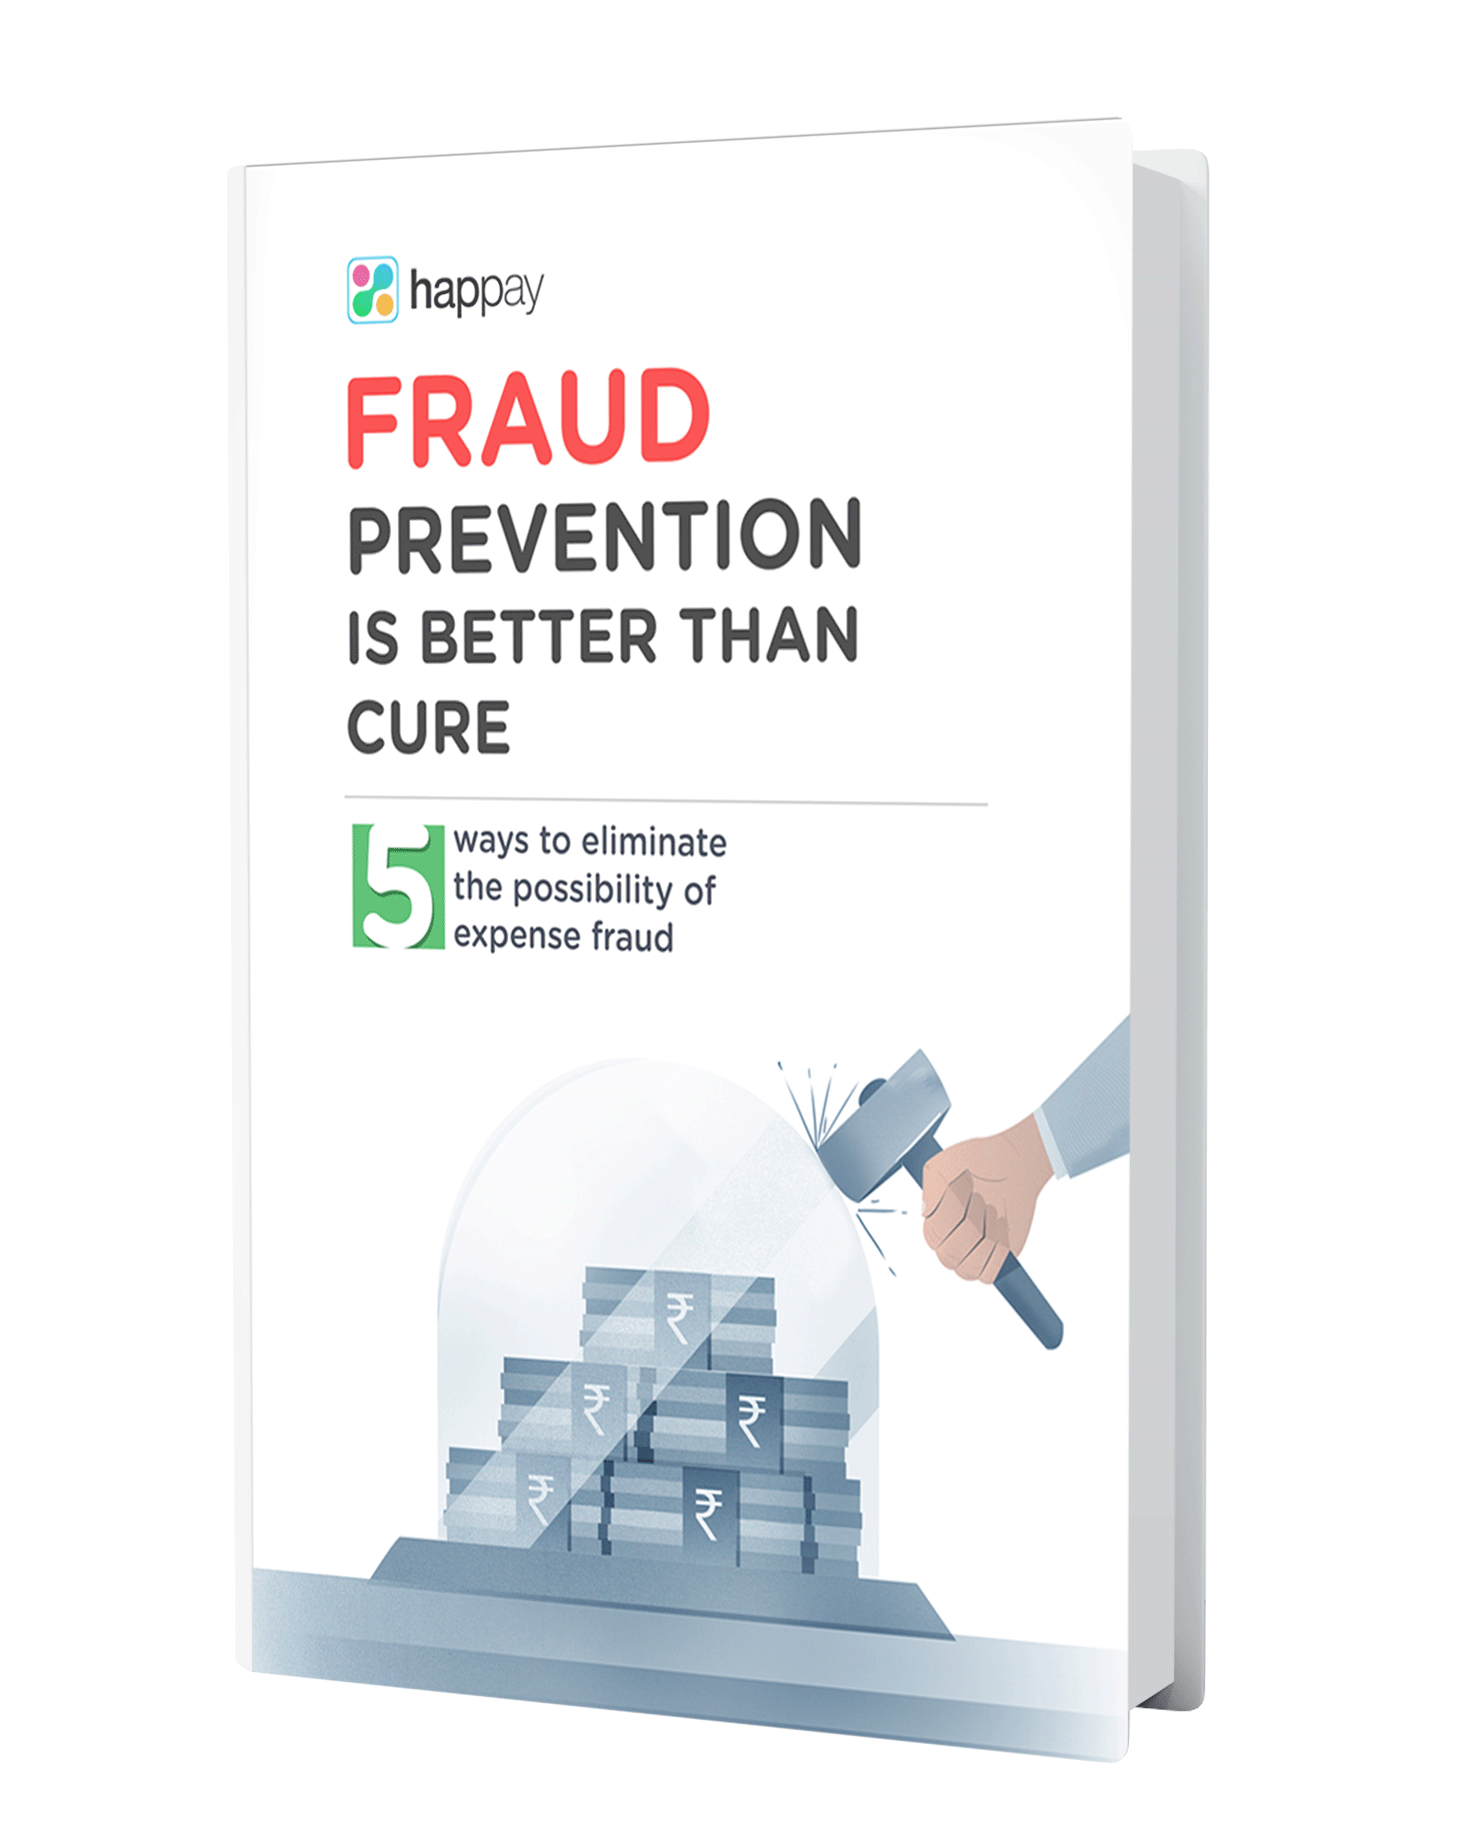 Happay Fraud Prevention is Better Than Cure